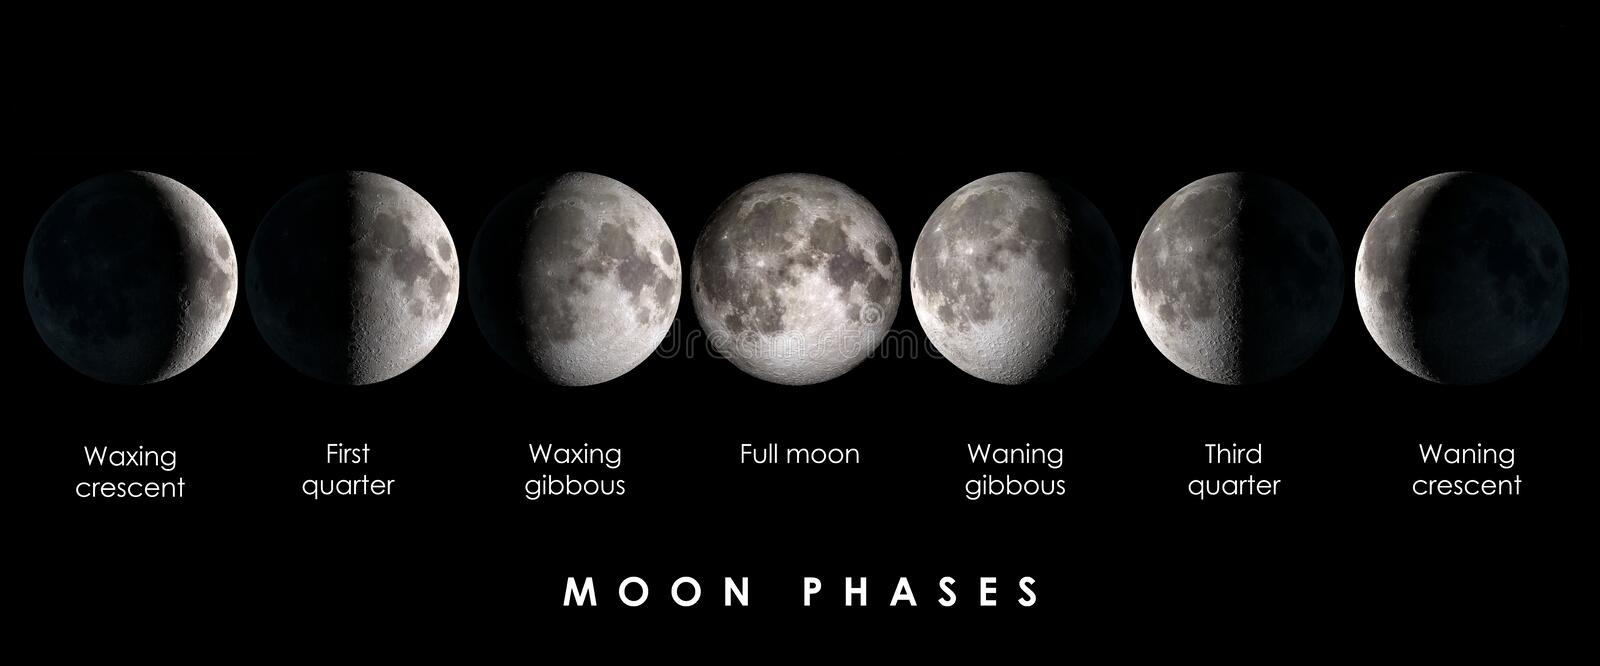 Moon phases with text stock images